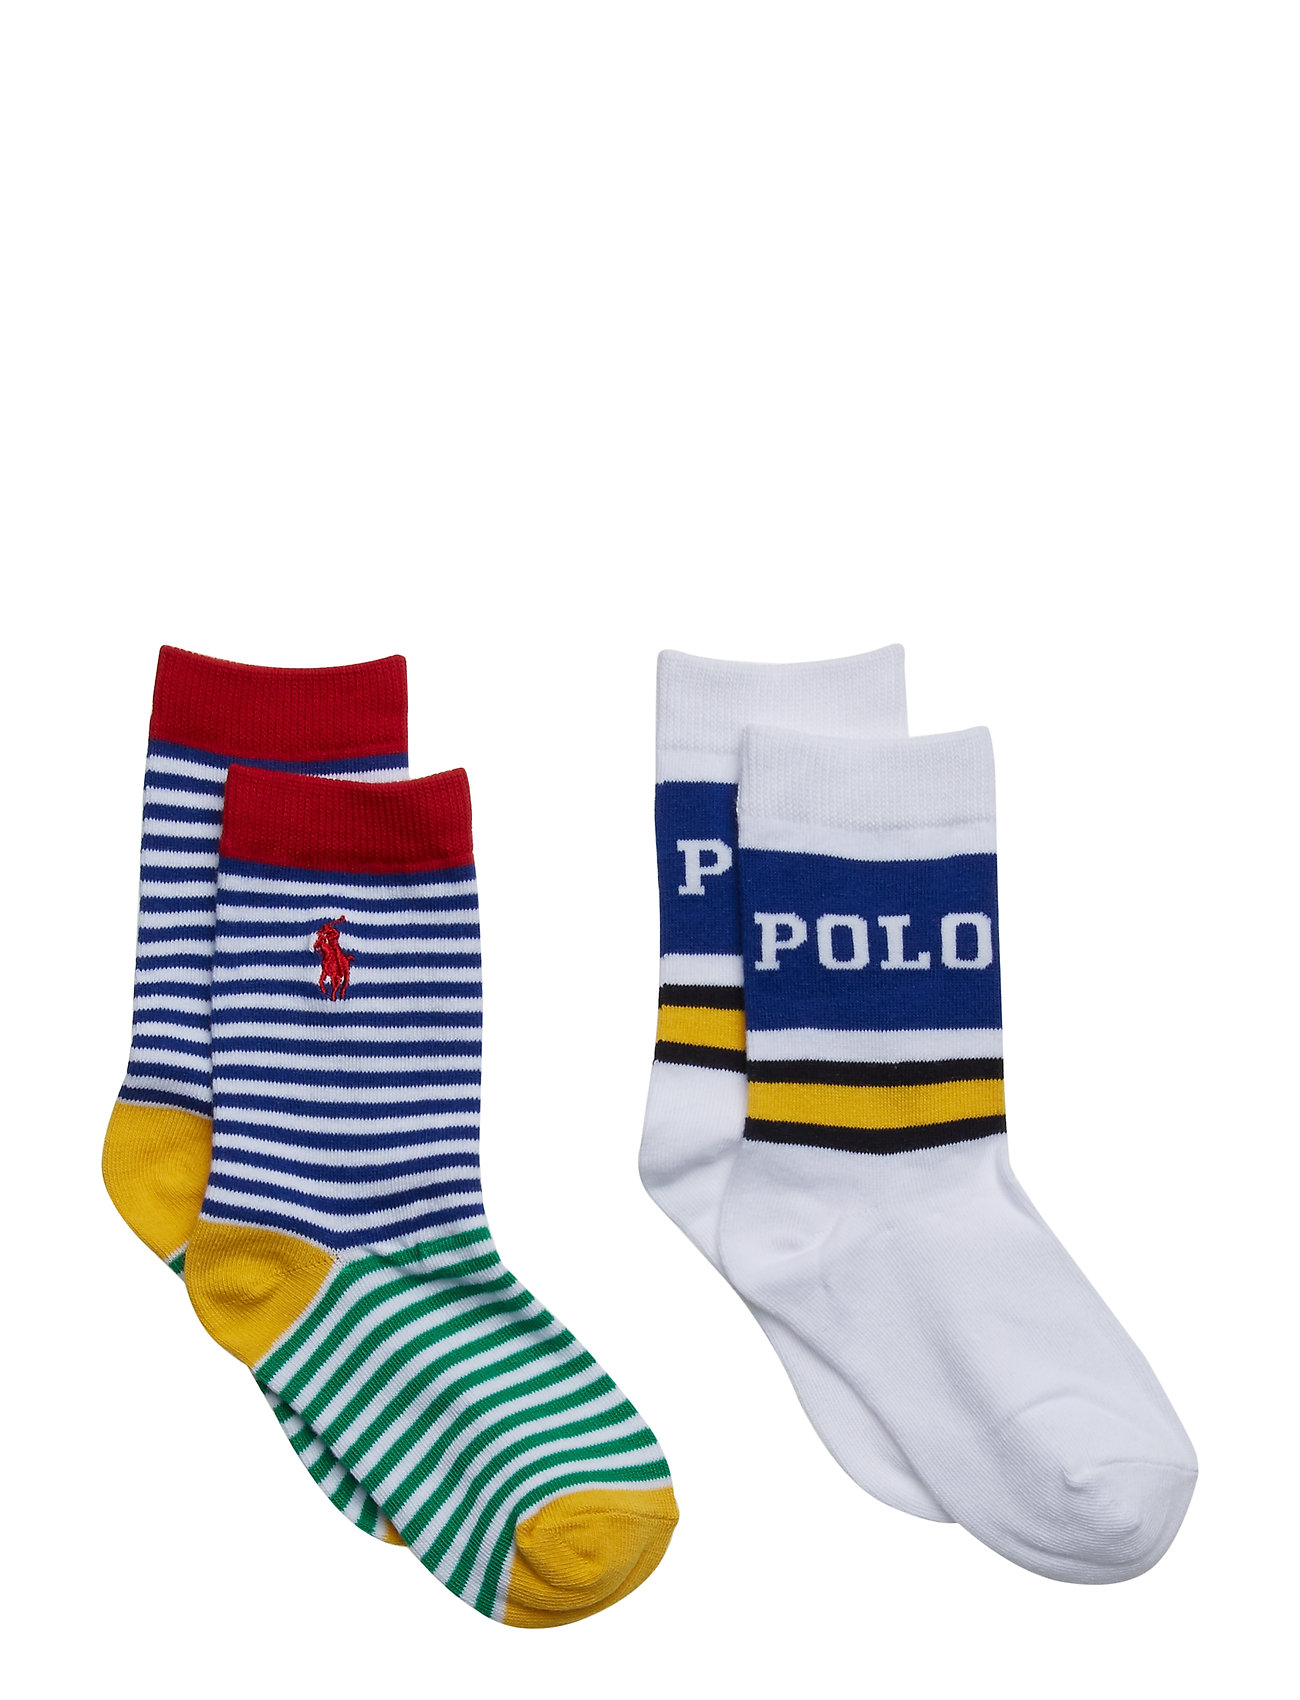 Ralph Lauren Kids COTTON BLEND-NEWPORT POLO 2PK CRW